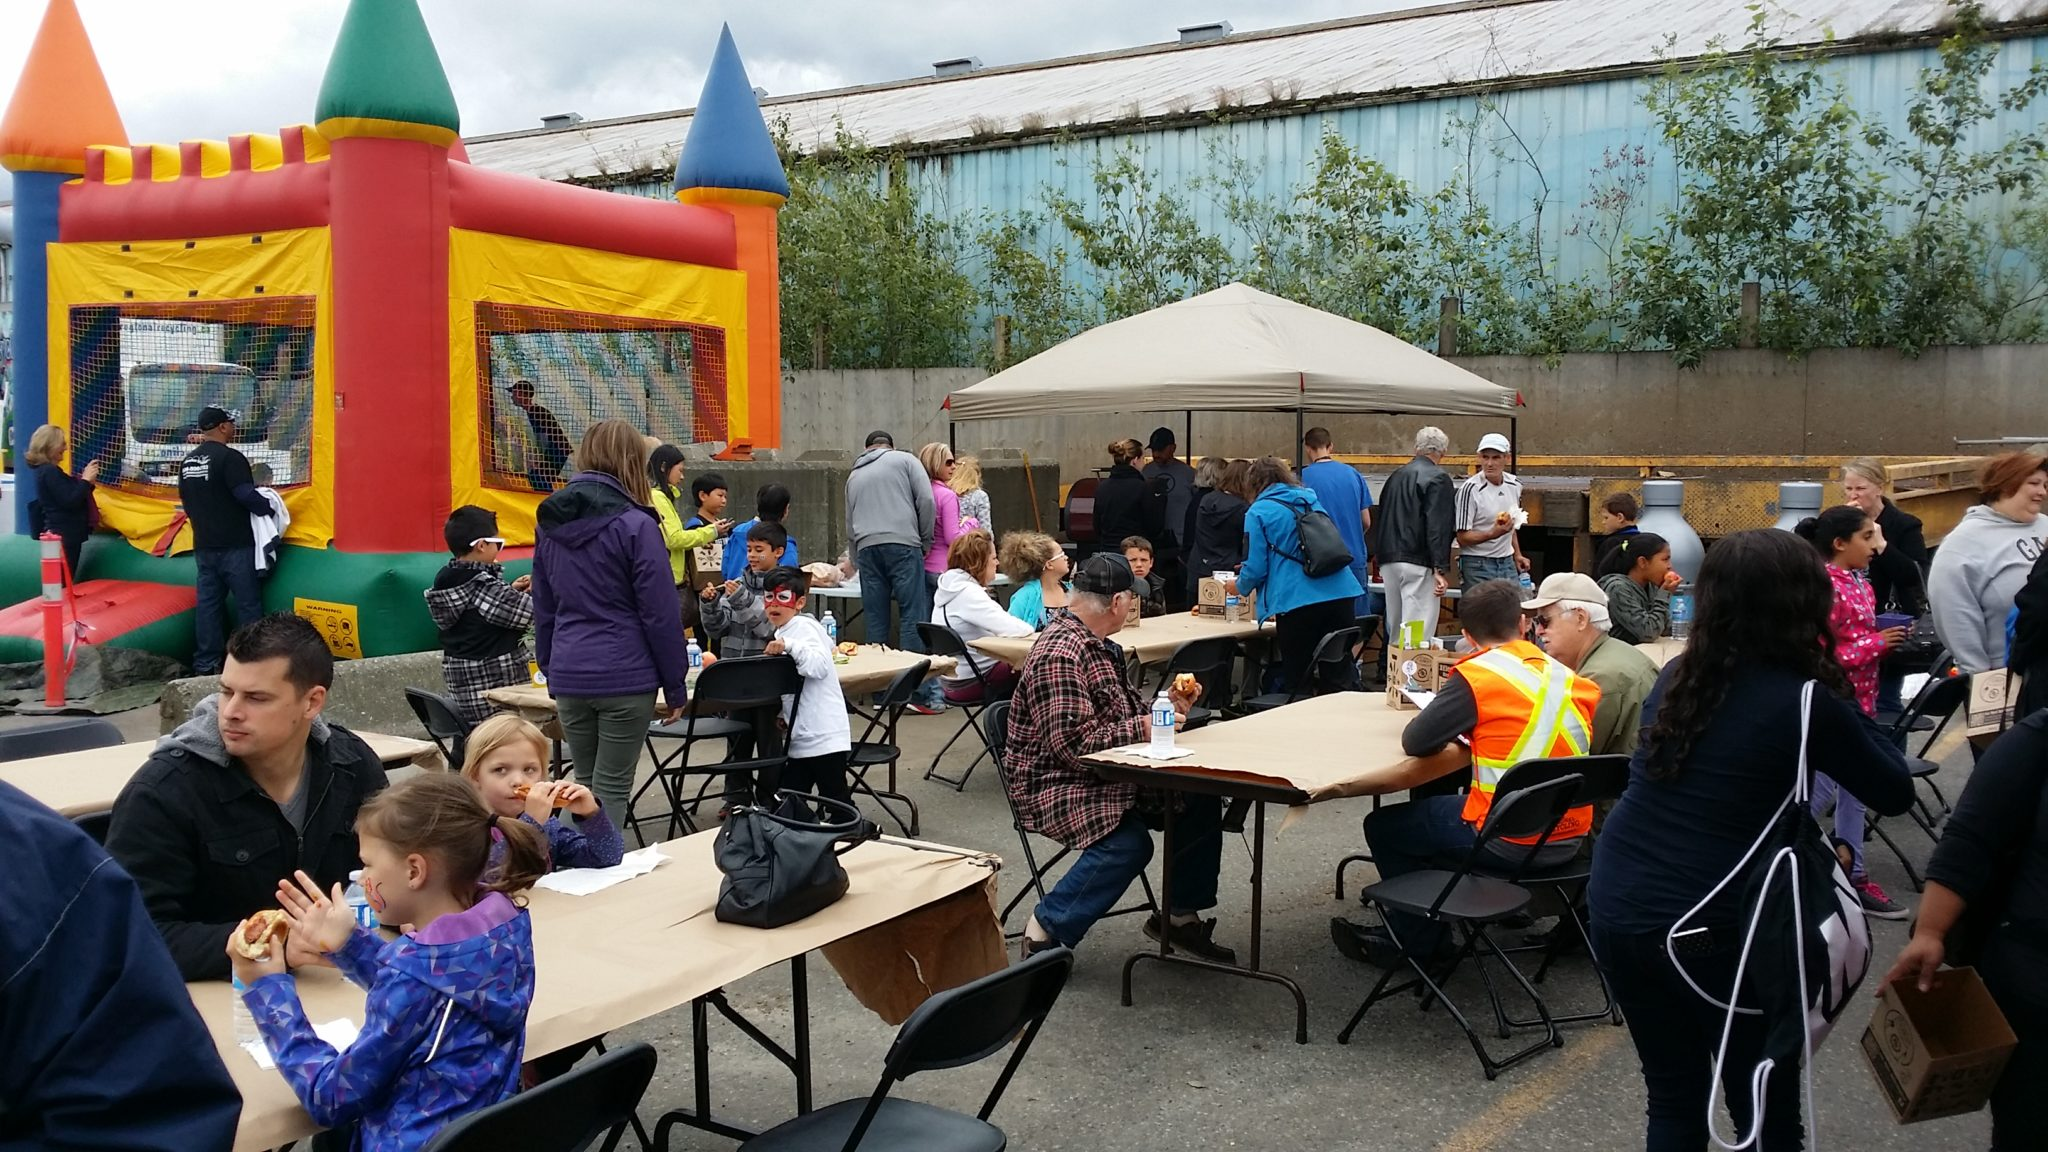 Regional Recycling Abbotsford 2016 Environment Week Event | Recycling Education